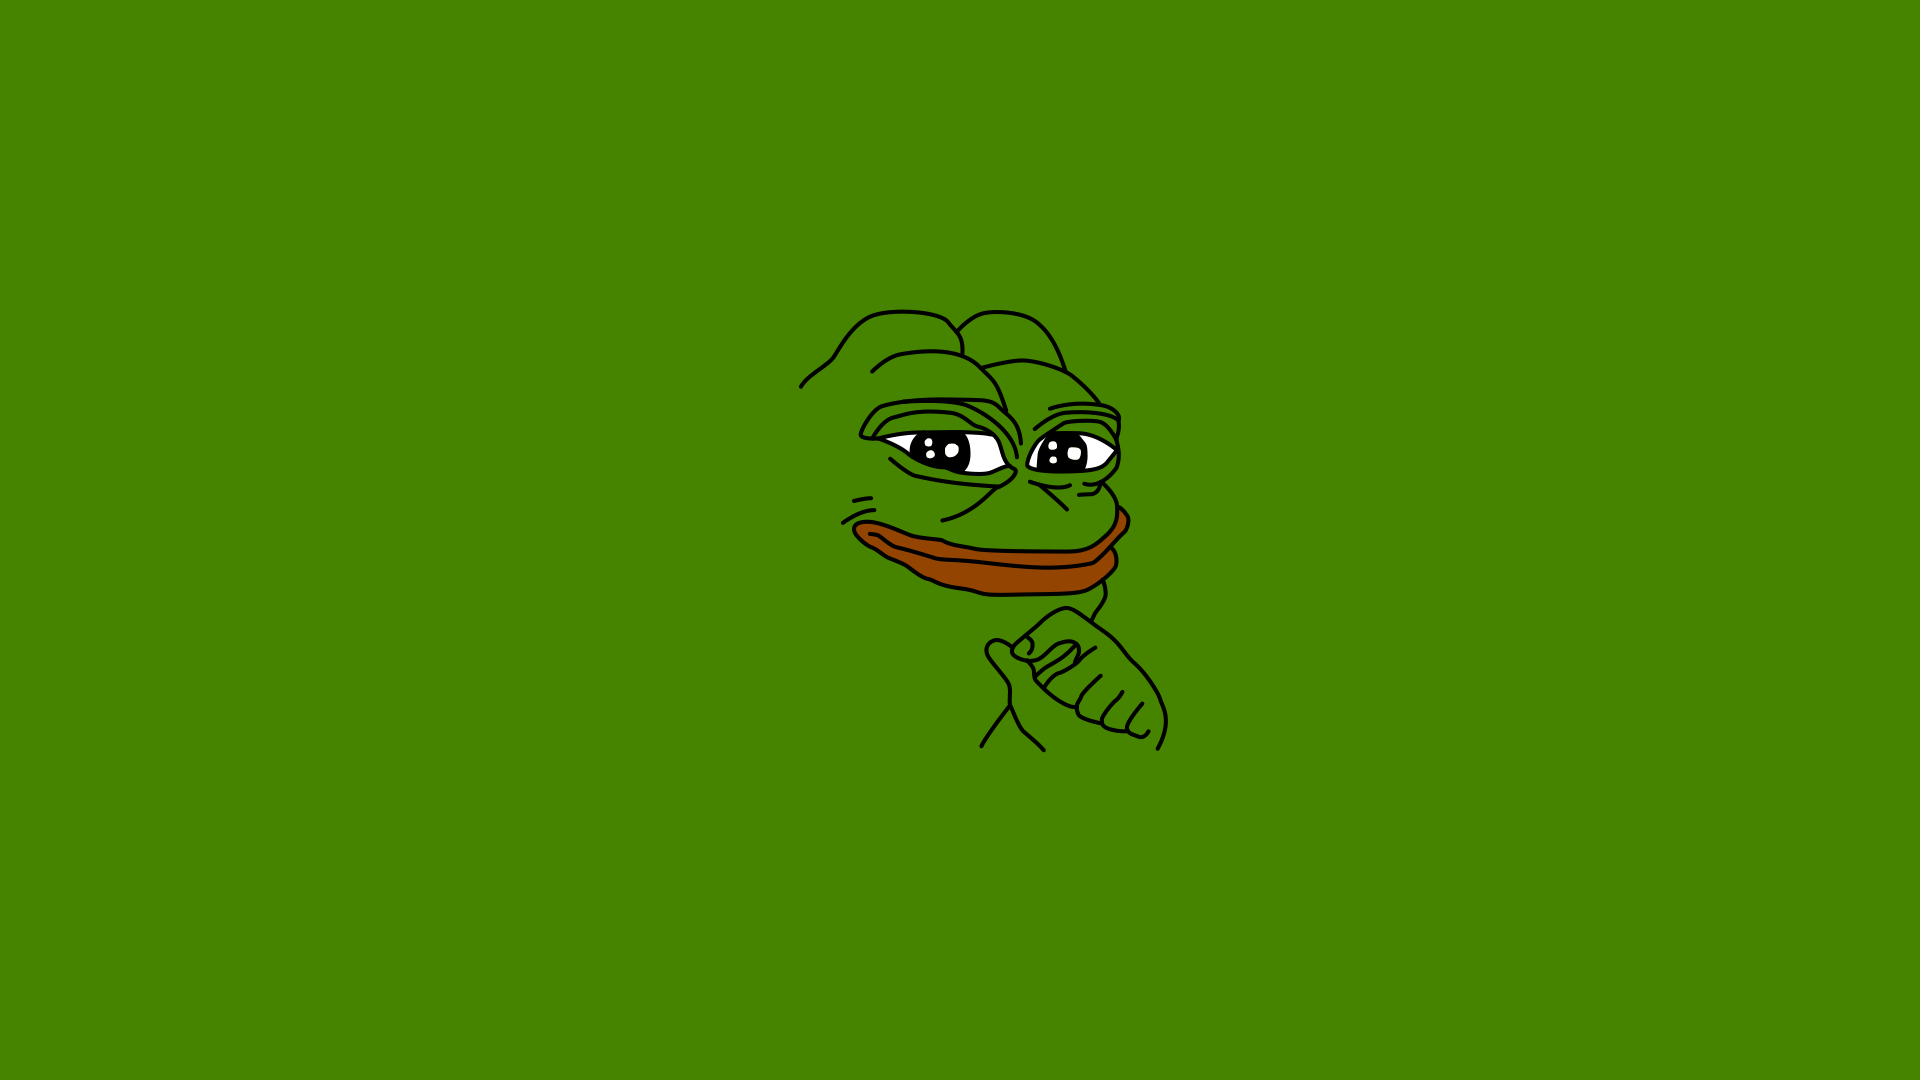 pepe the frog hd wallpaper -#main